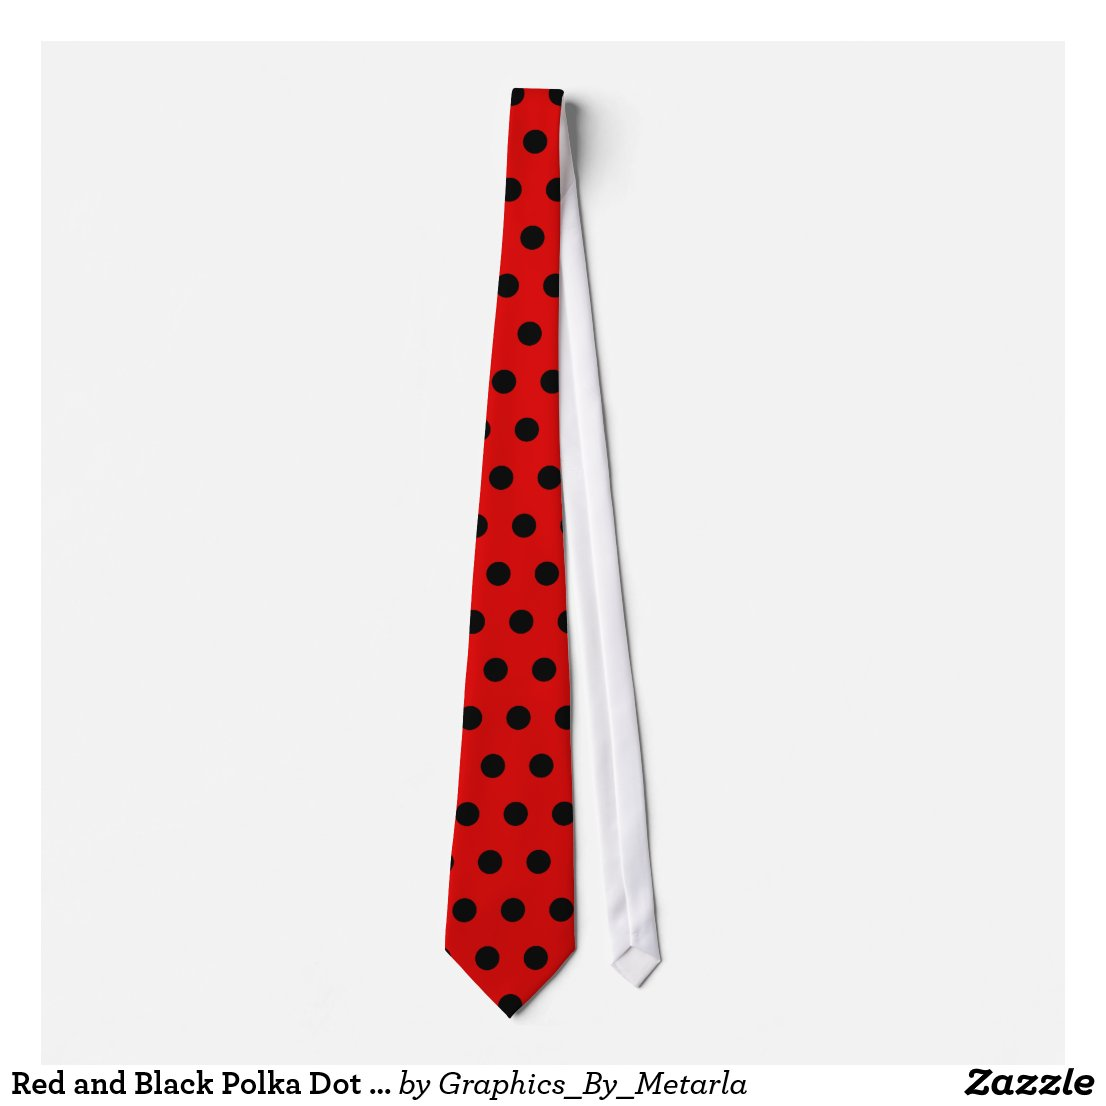 Red and Black Polka Dot Tie